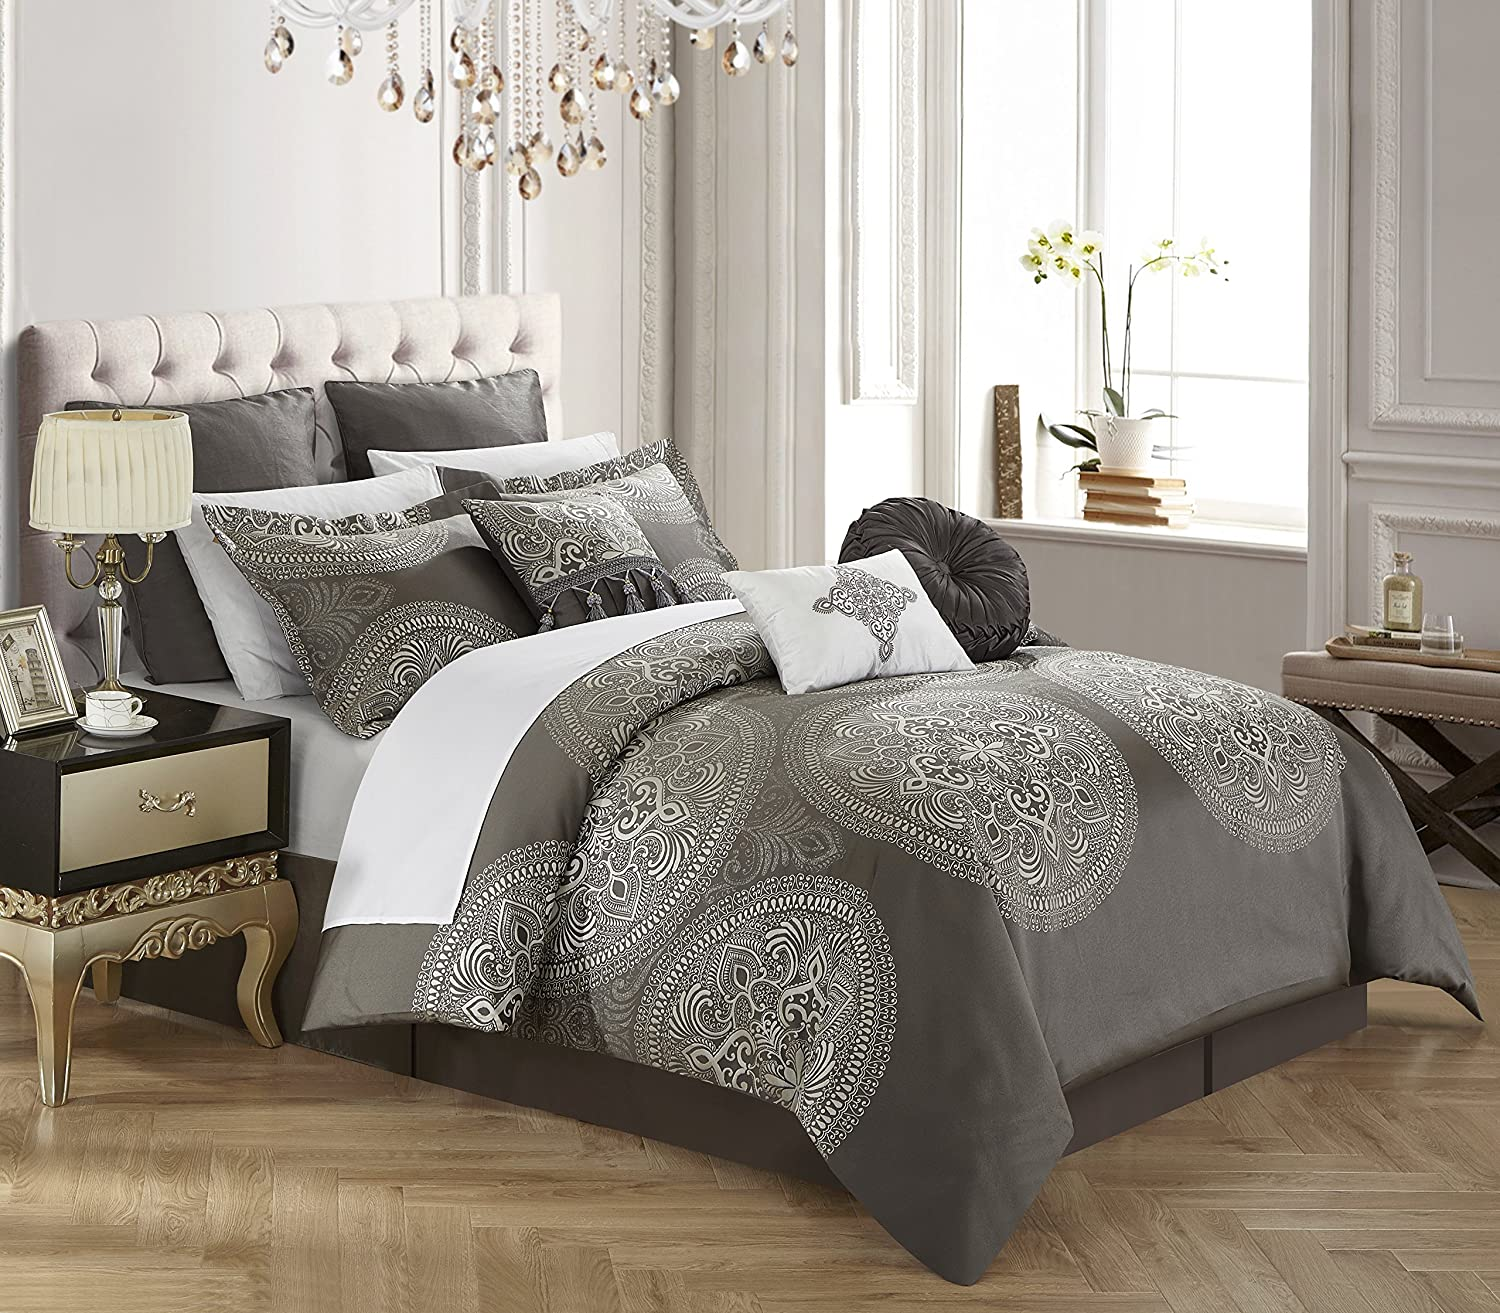 Chic Home 9 Piece Orchard Place Faux Silk Luxury Large Medalion Jacquard with Embroidery Details and Trims King Comforter Set Grey